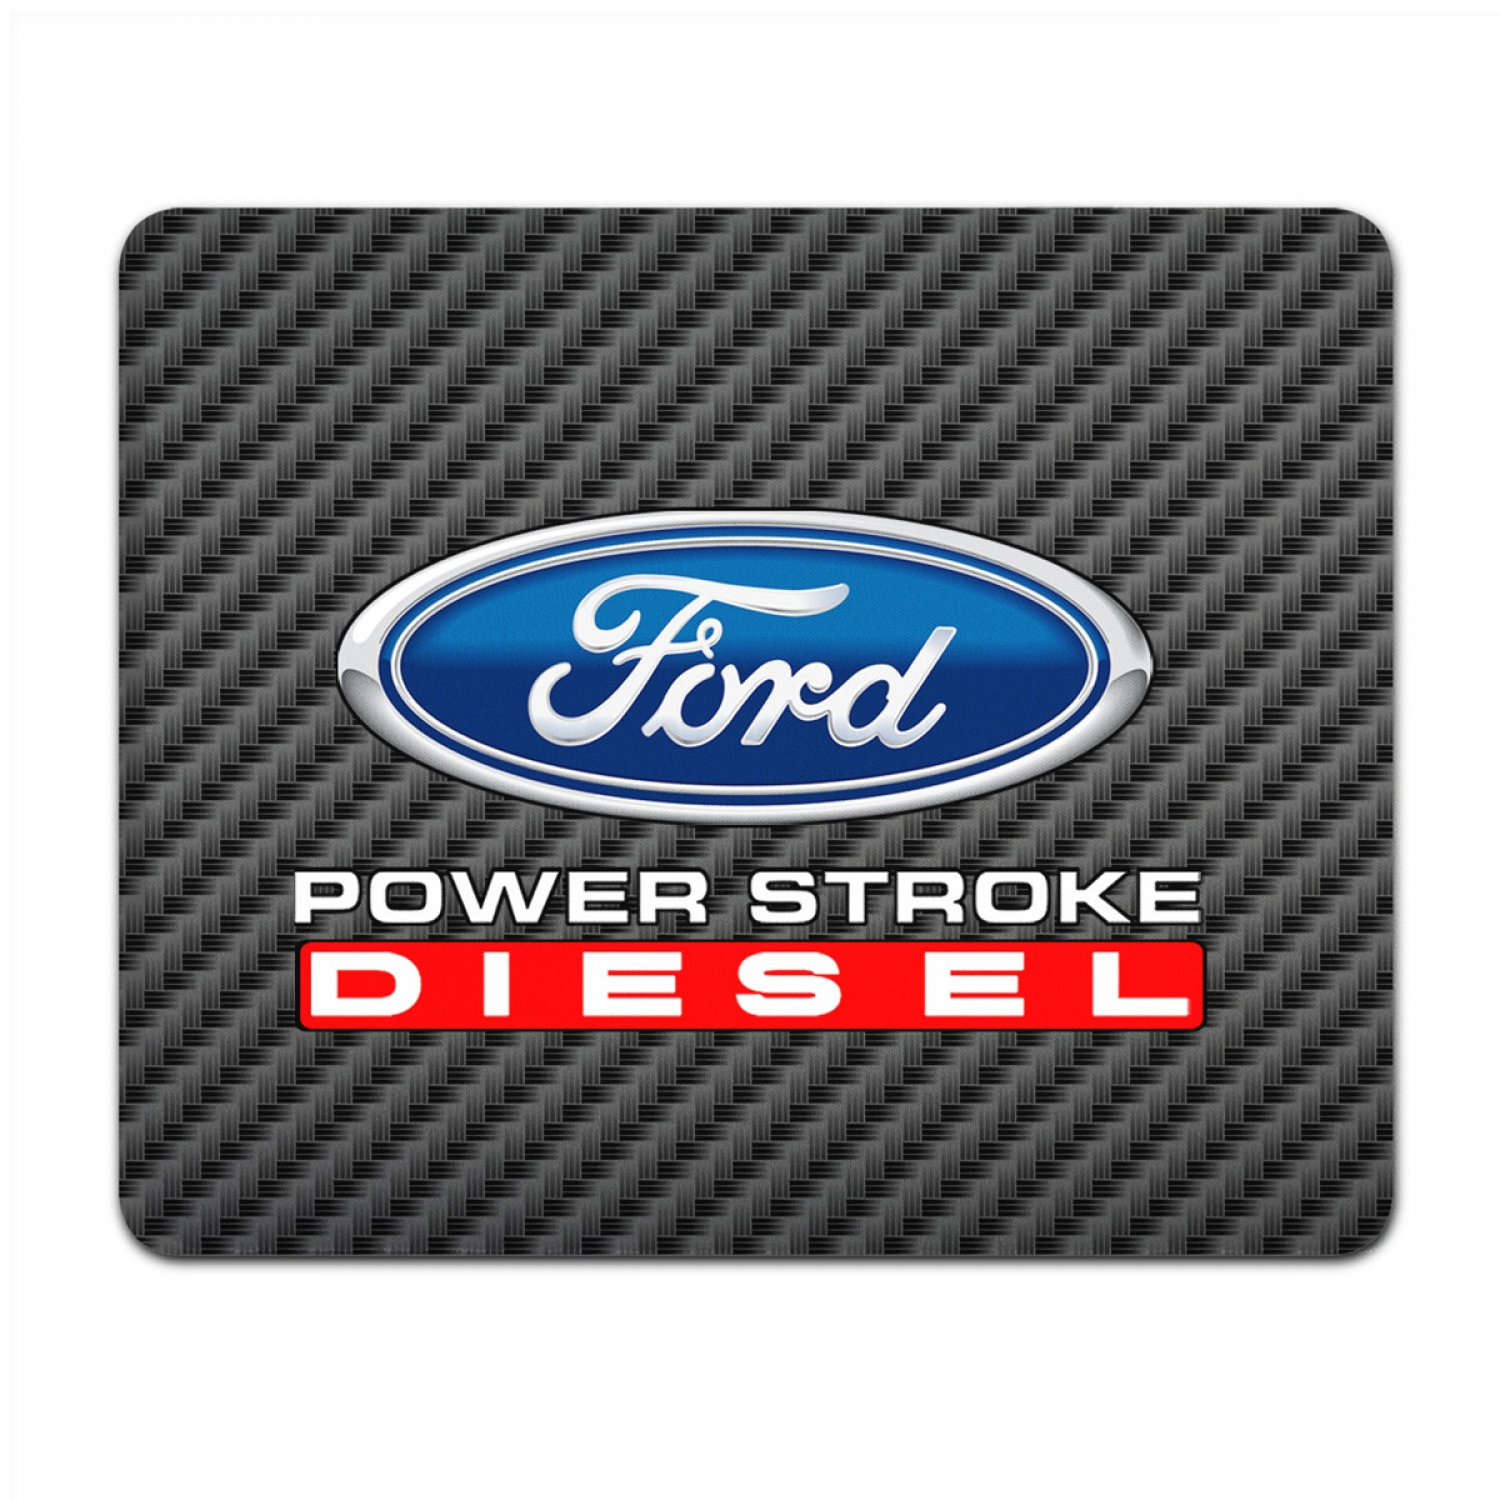 Ford Power Stroke Diesel Black Carbon Fiber Texture Graphic PC Mouse Pad